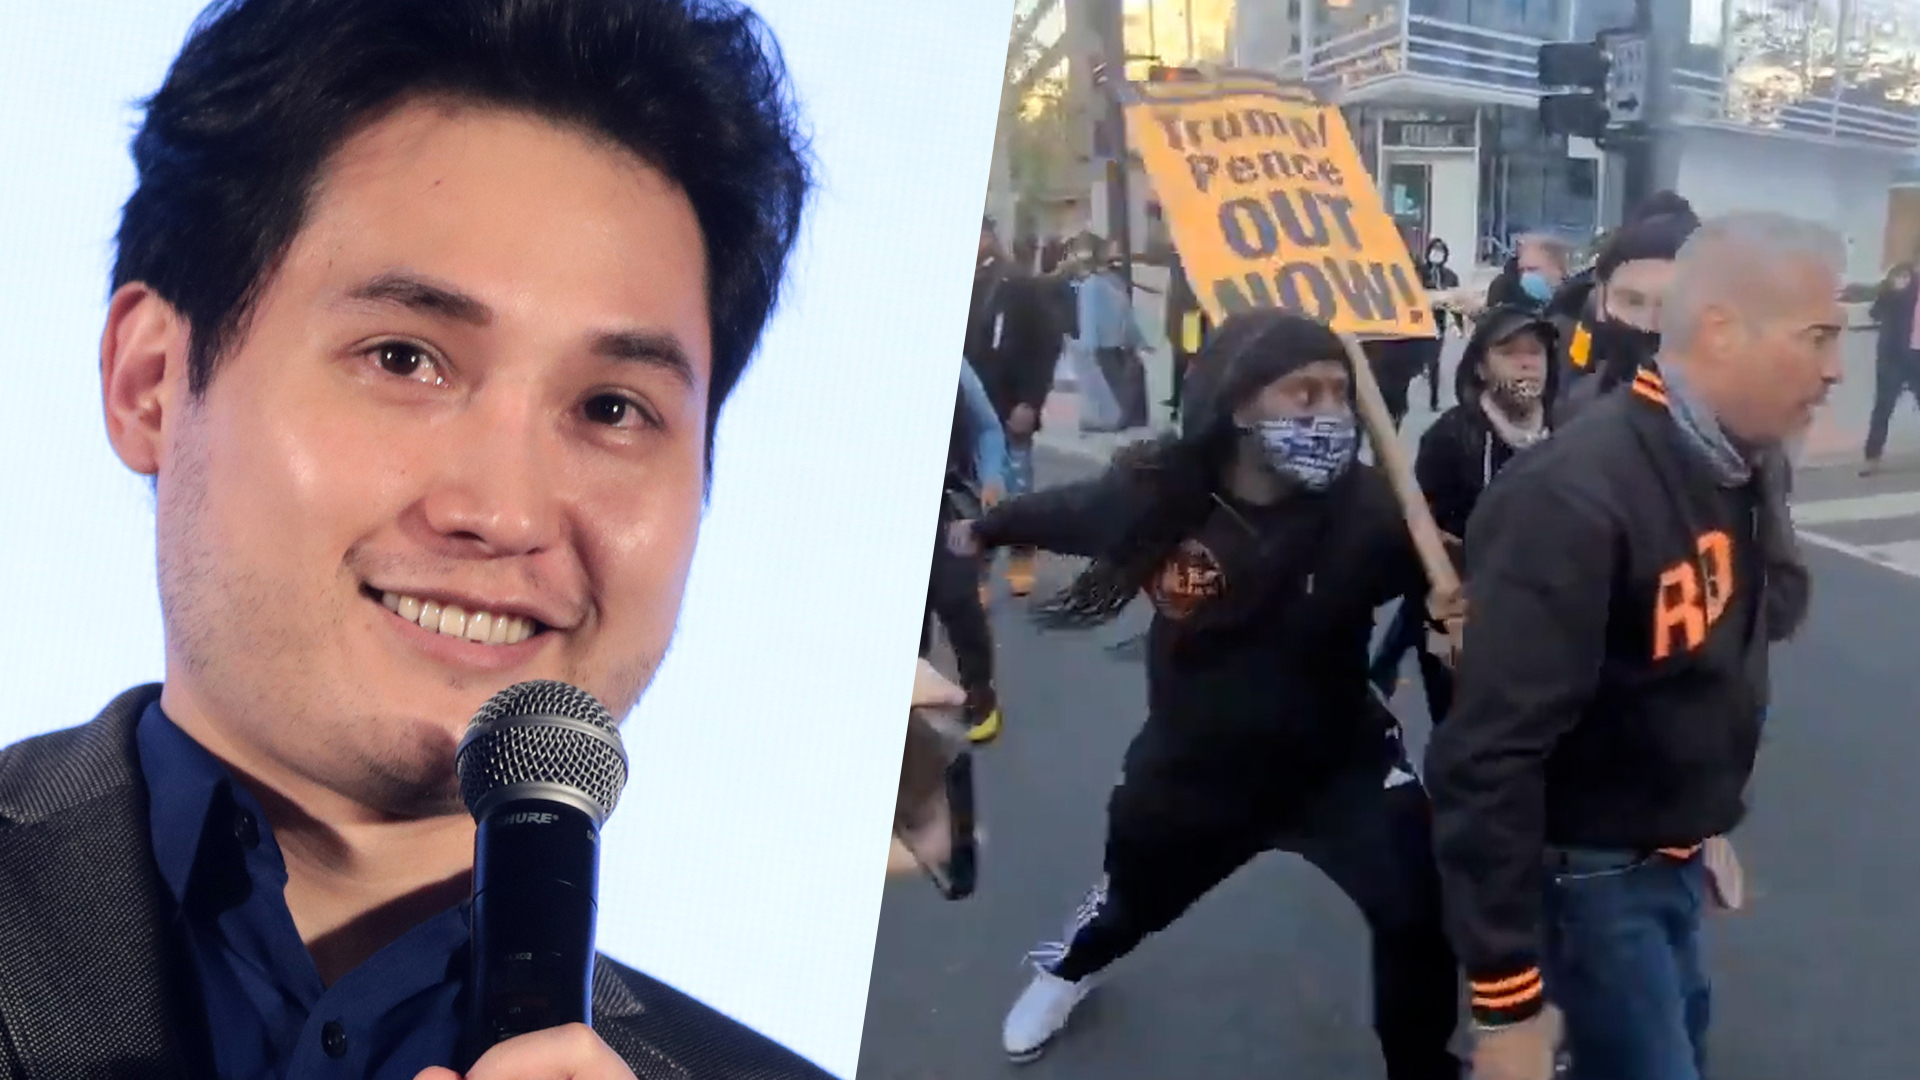 Andy Ngo tweets a misleading video from the Million MAGA March in Washington D.C.